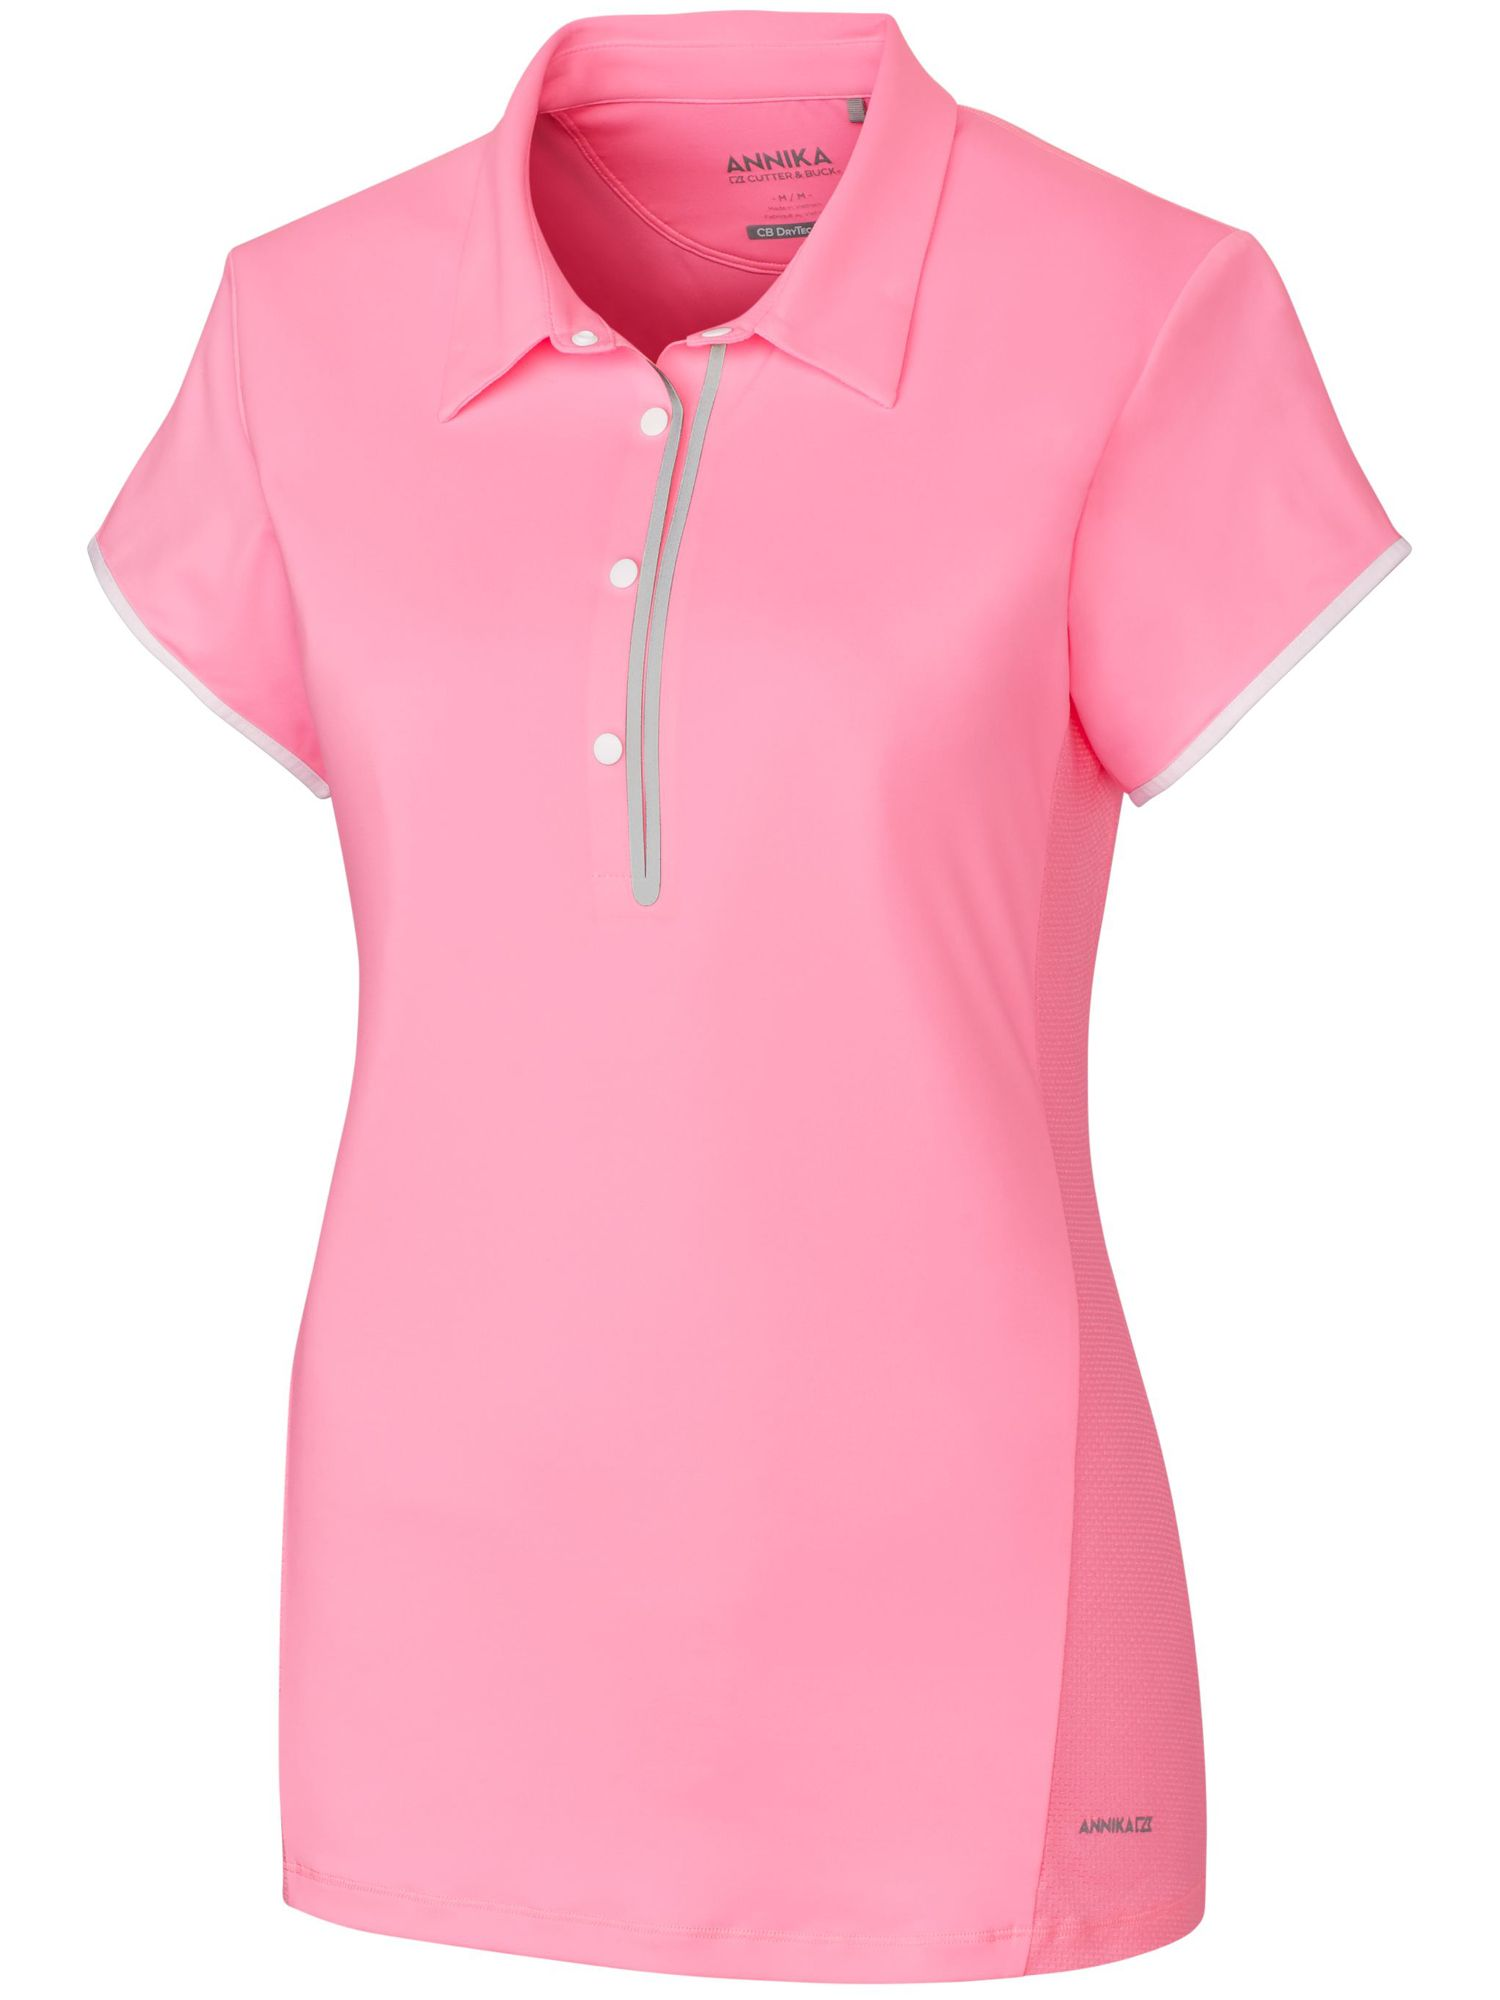 Annika Competitor Cap Sleeve Polo, Pink